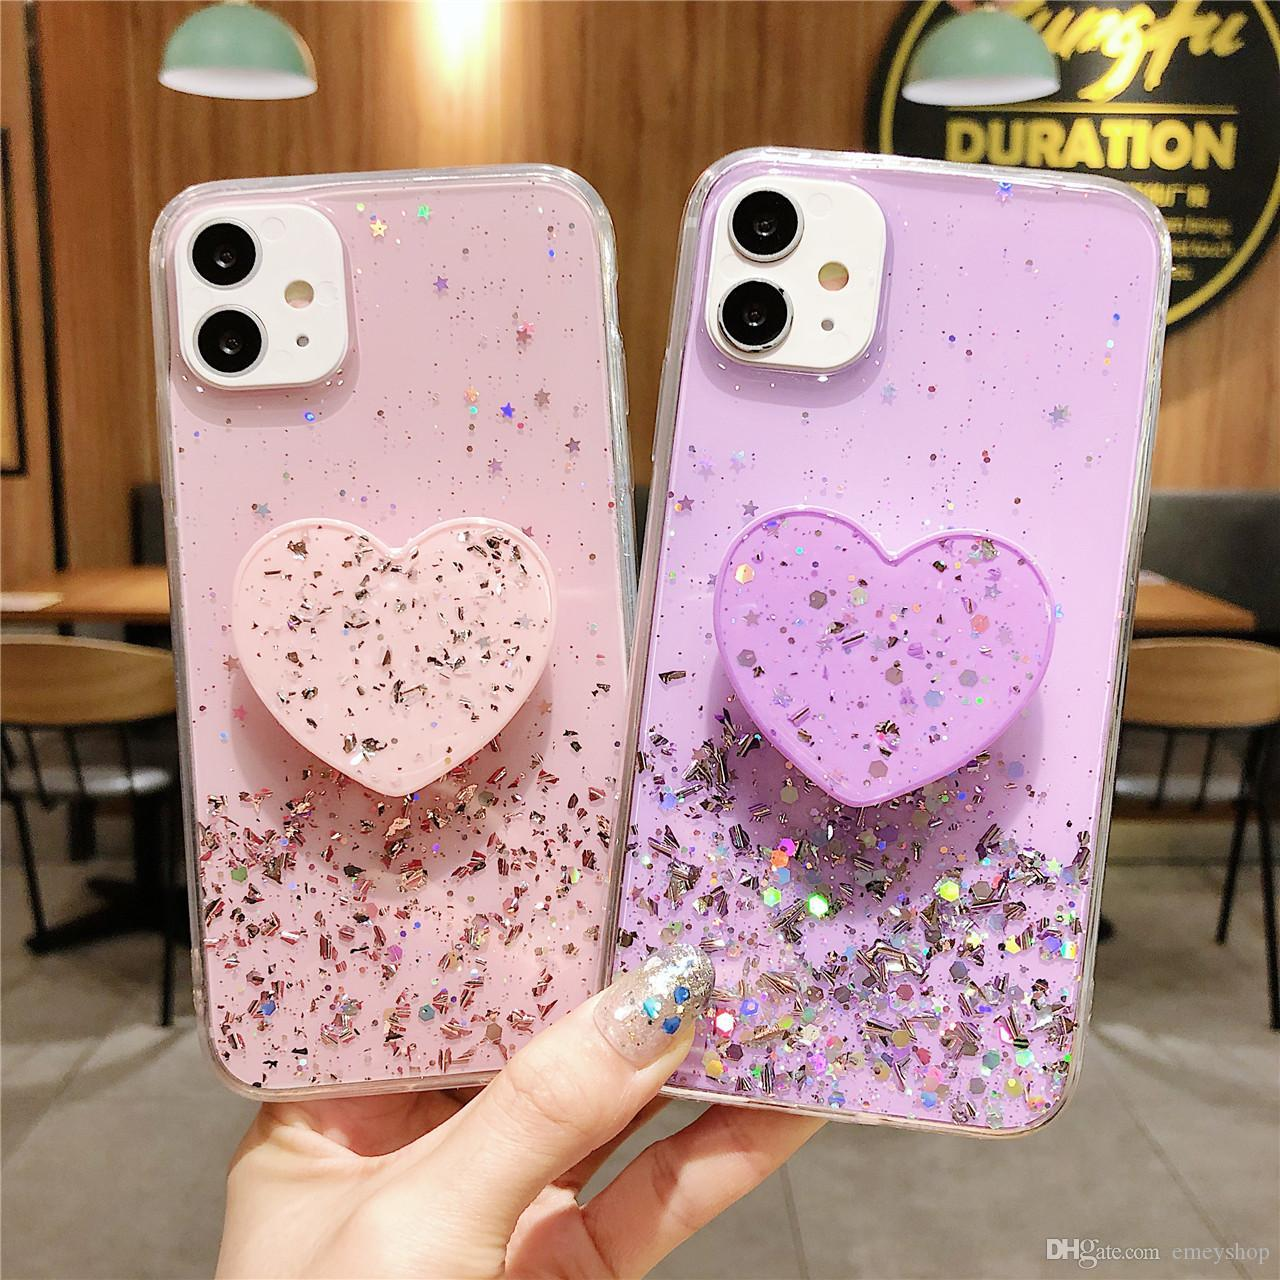 Bling Glitter Phone Case para iPhone 12 Caso 11 Pro Max 6 6 6S 7 8 Plus X XR XS Max Star Lantejoul Ster Suporte Suporte Titular Coque